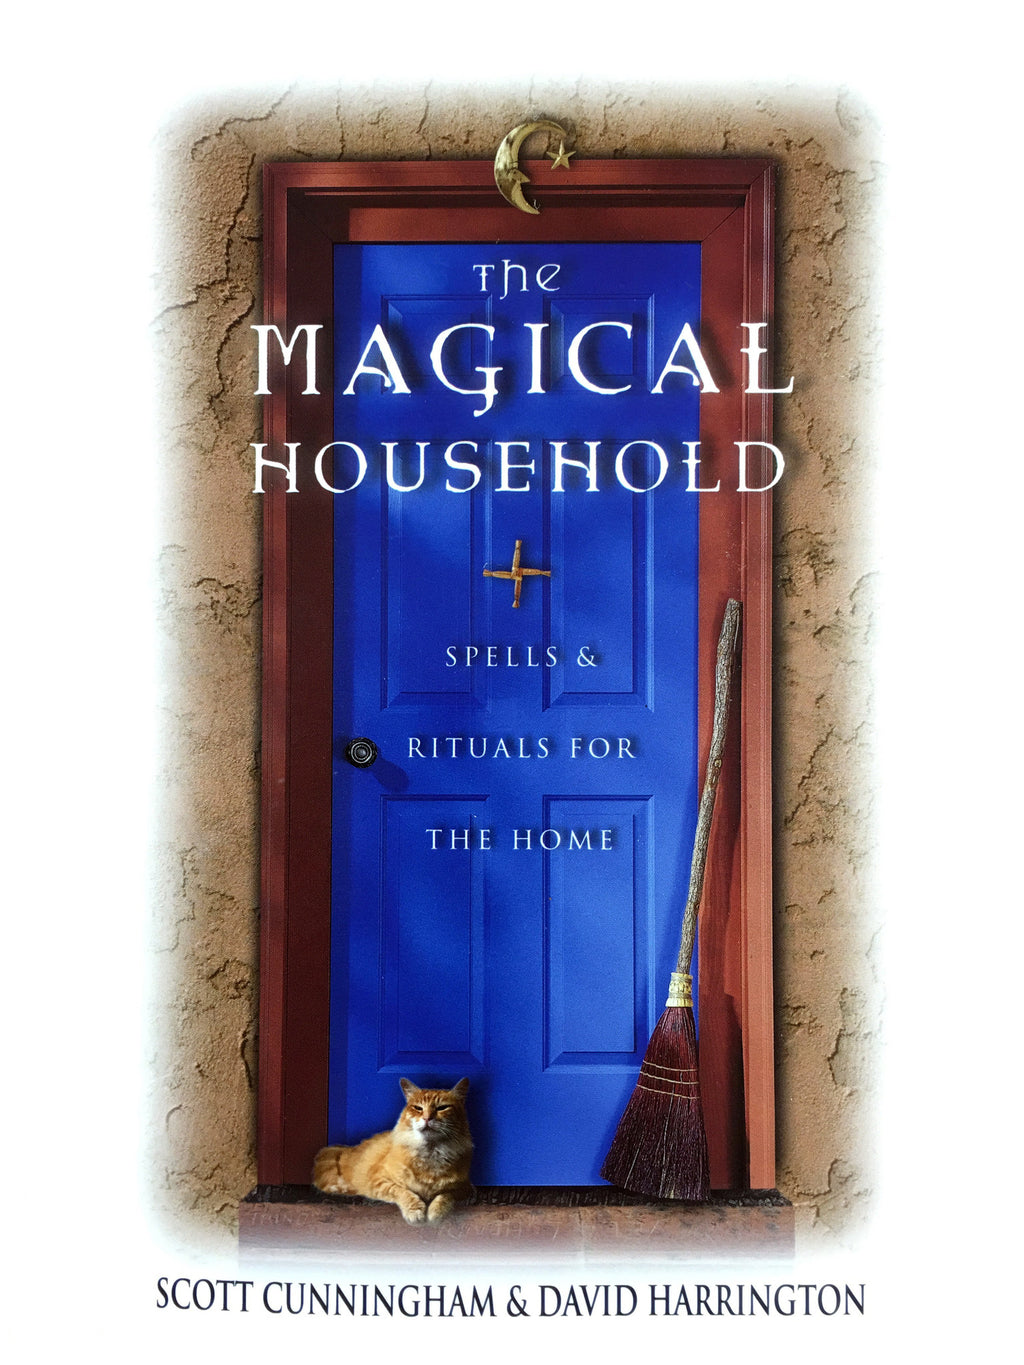 The Magical Household - Spells and Rituals for the Home By Scott Cunningham and David Harrington